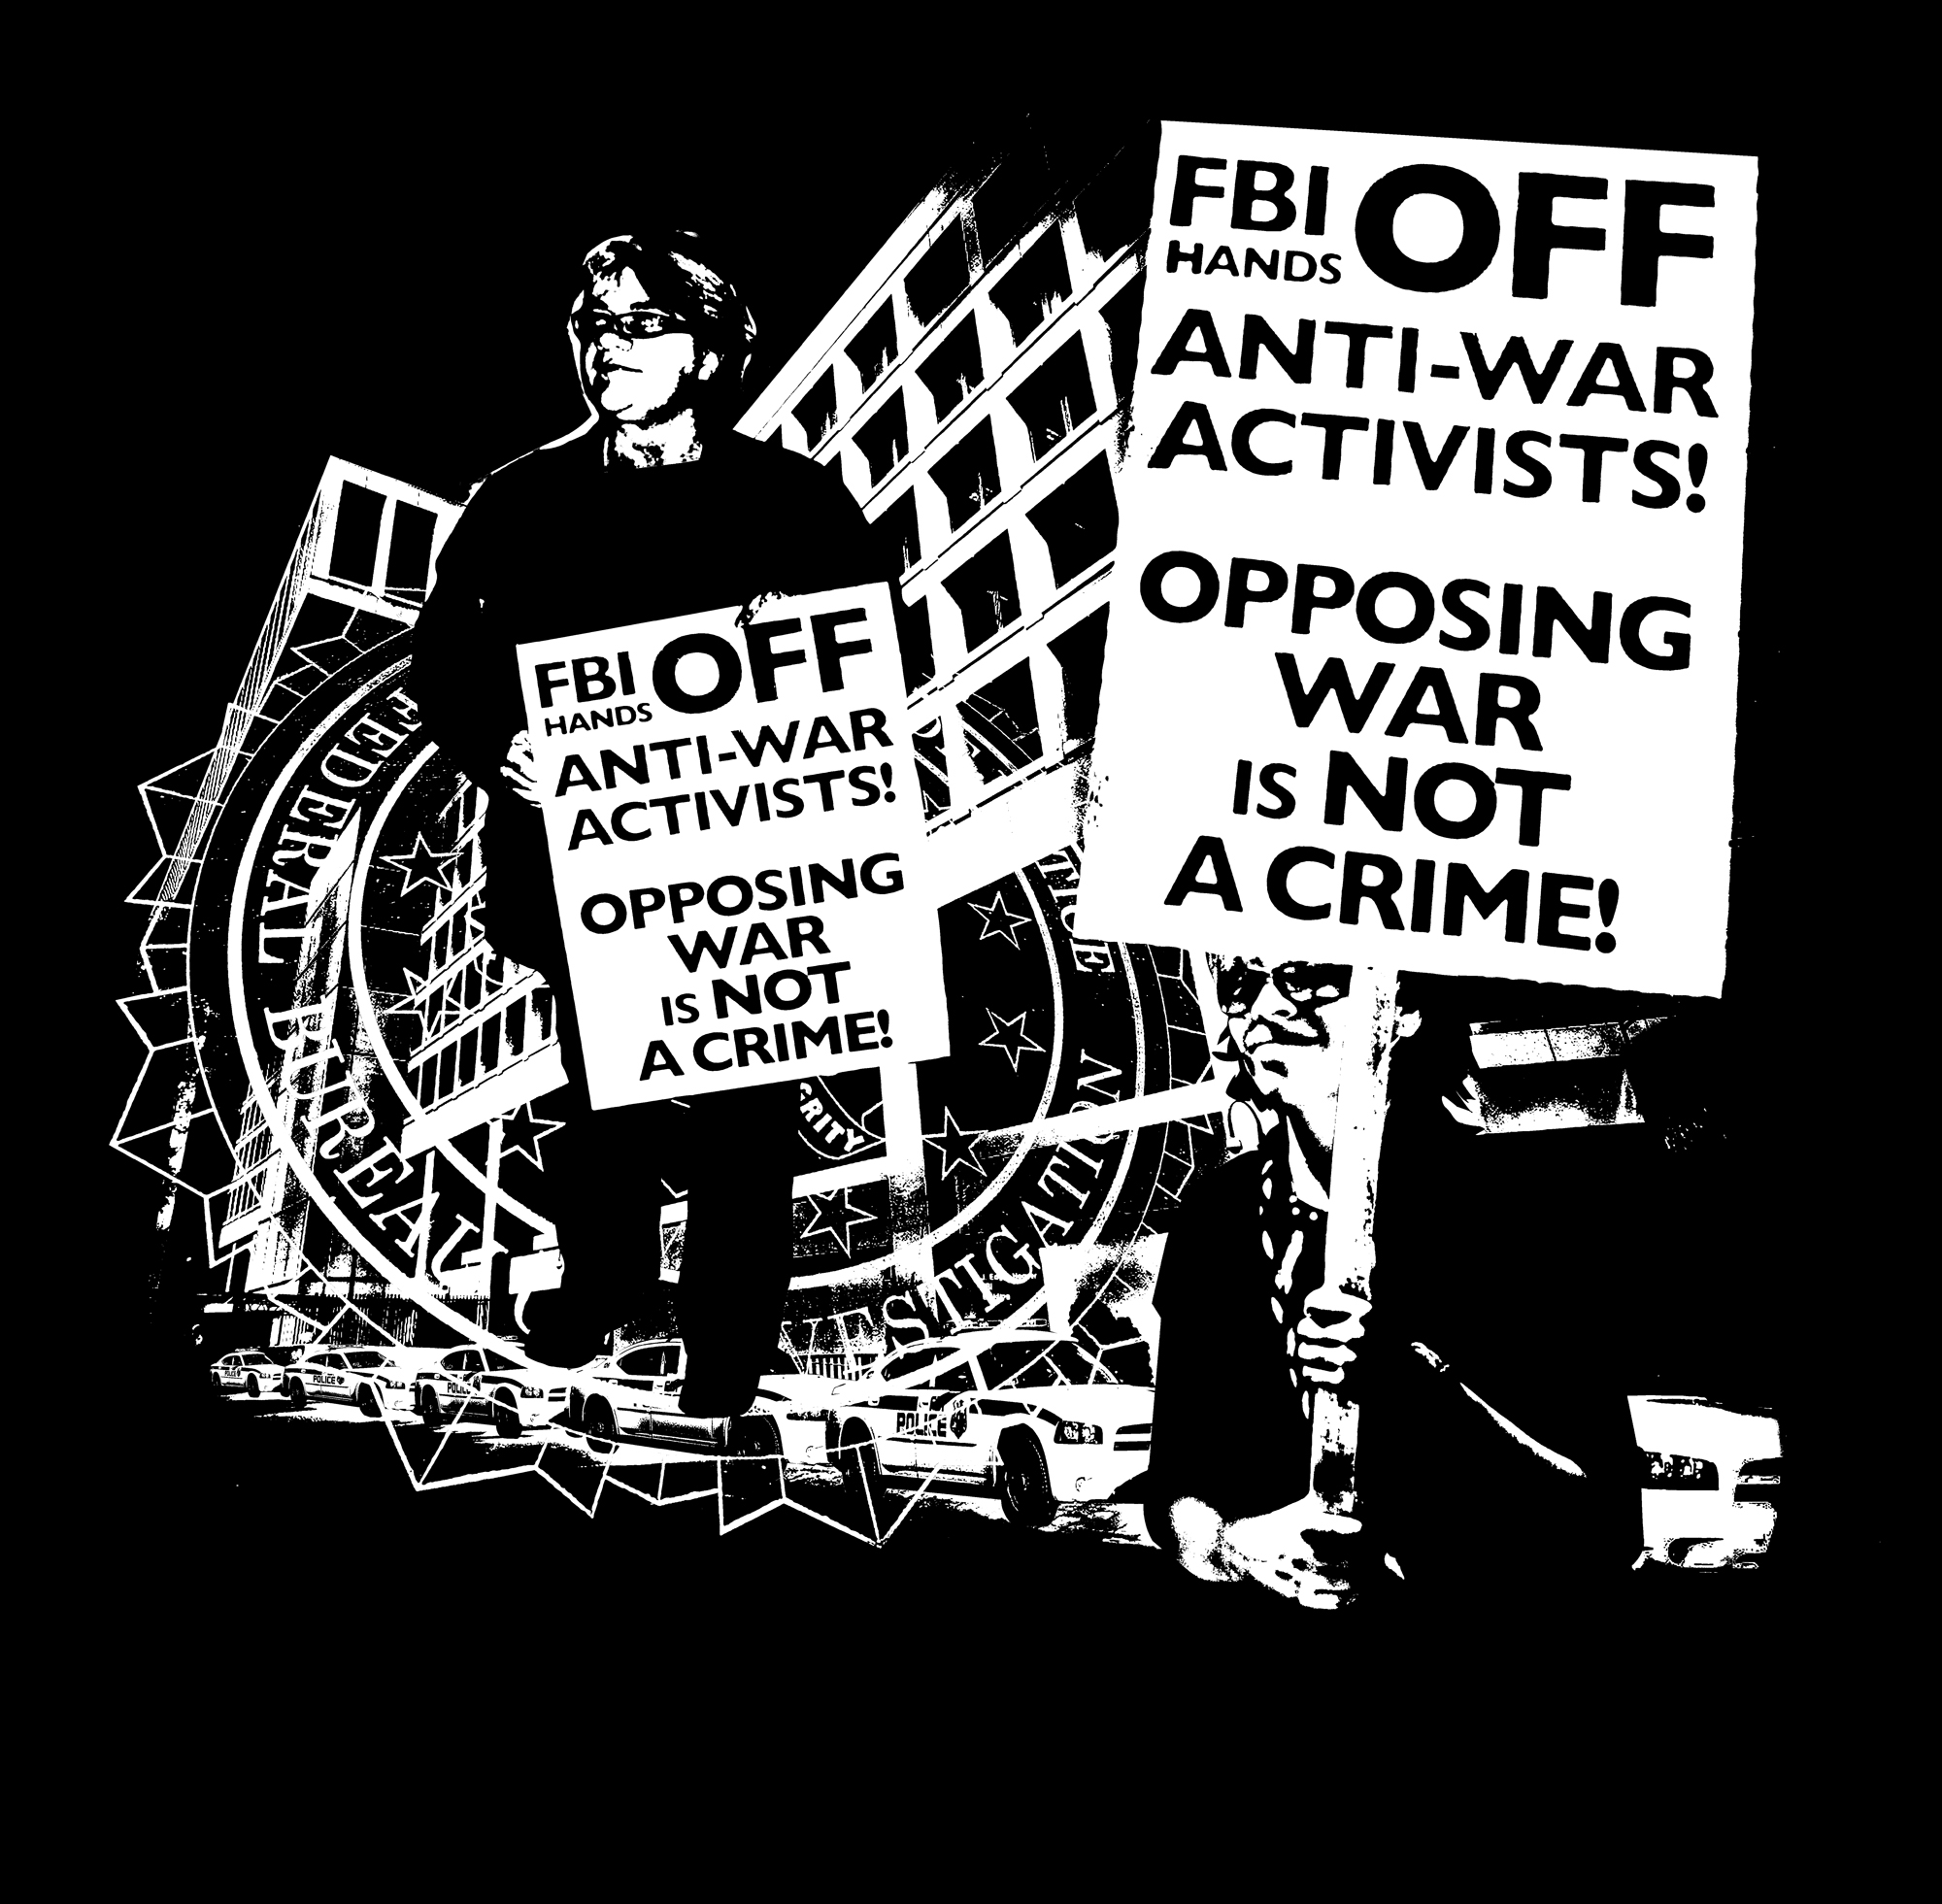 FBI Hands off Anti-War Activists